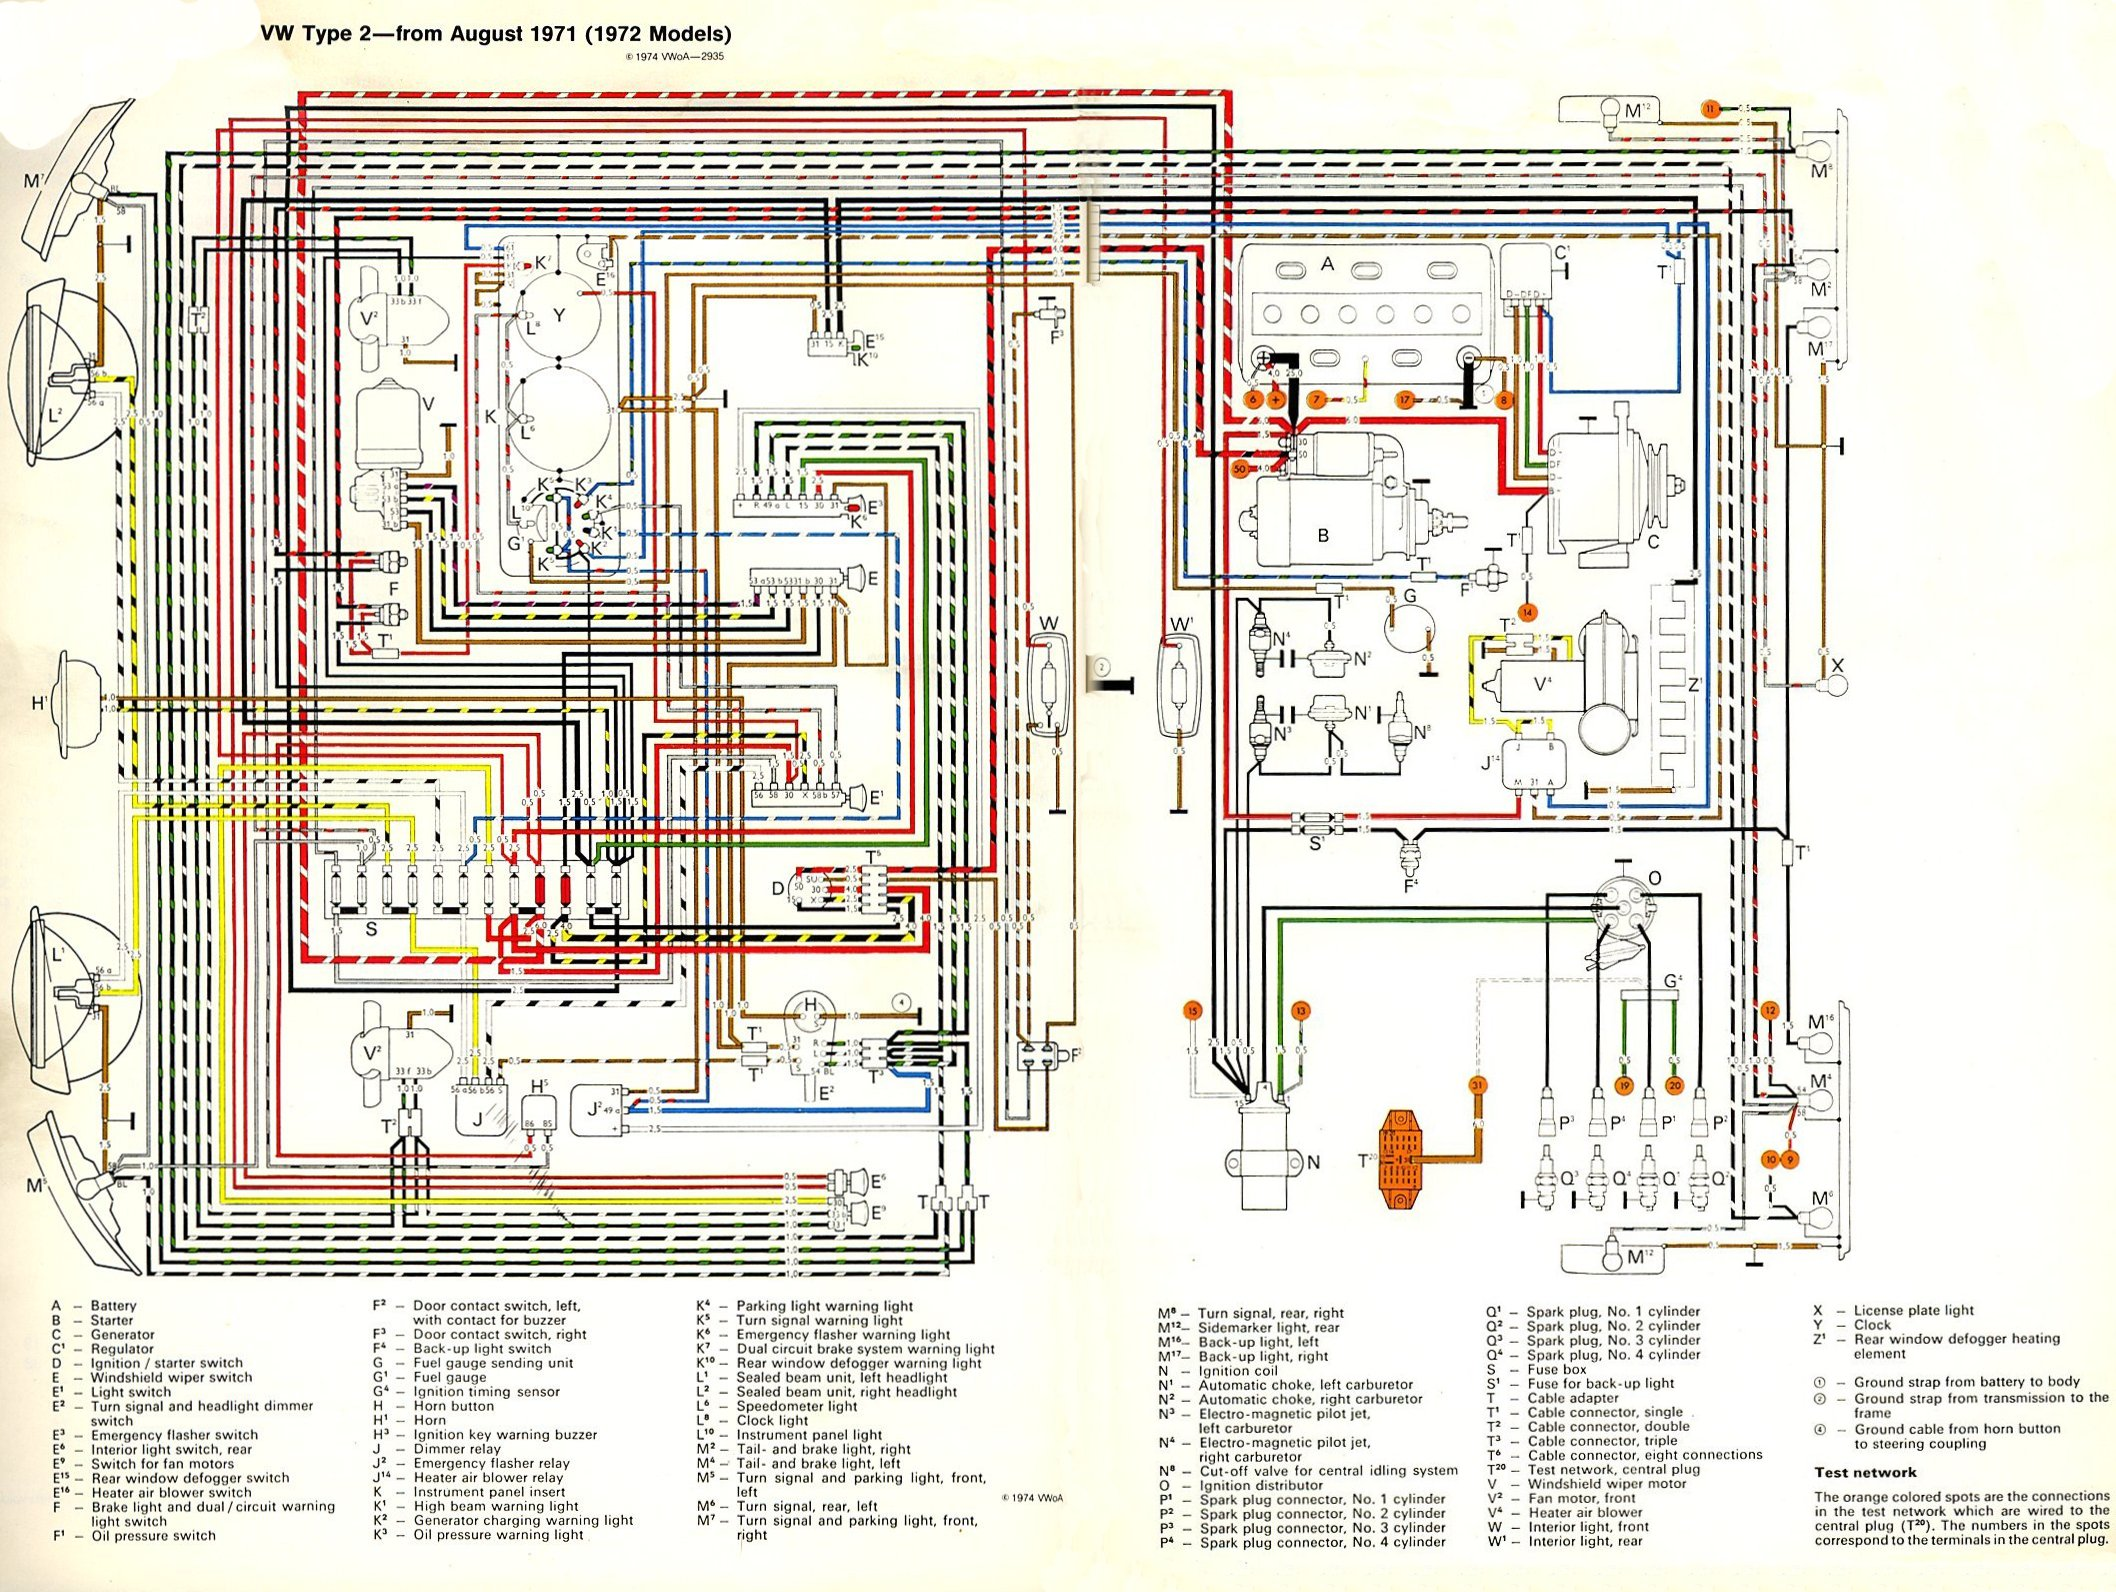 bus_1972_wiring 1977 porsche 911 wiring diagram wiring diagram simonand 1978 vw bus fuse box diagram at couponss.co